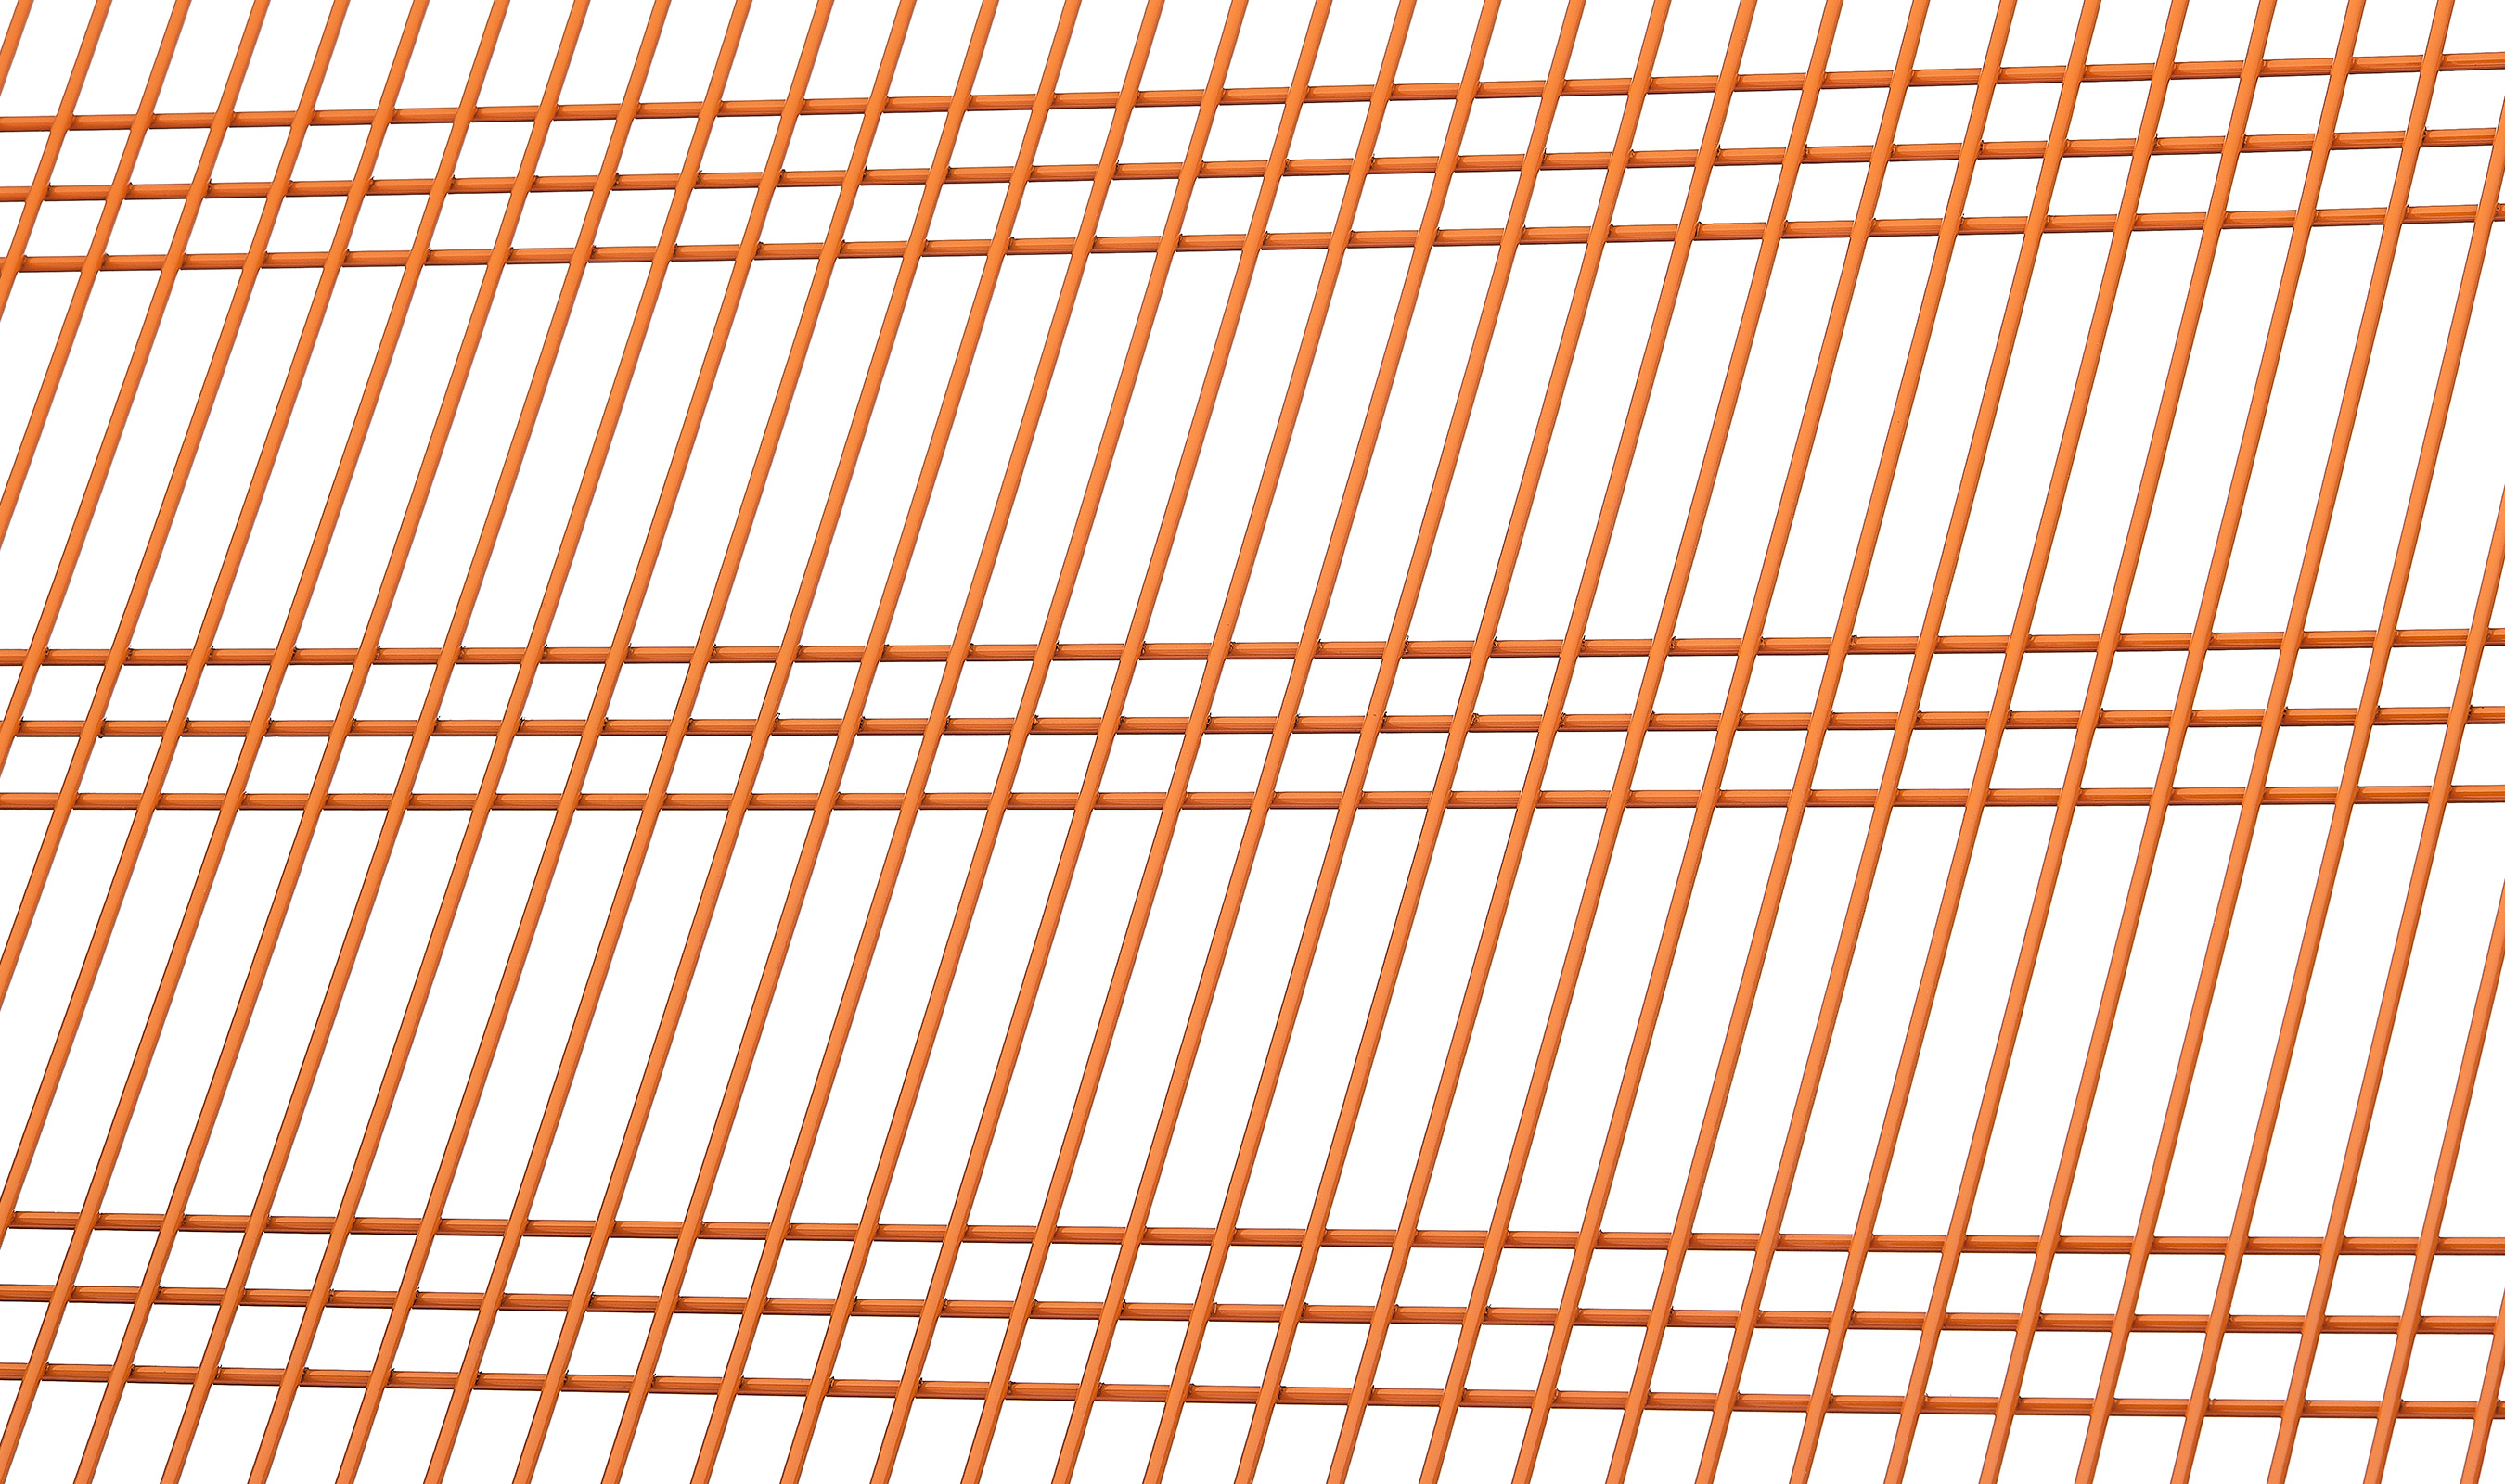 WDZ-539 Ornamental Welded Wire Mesh